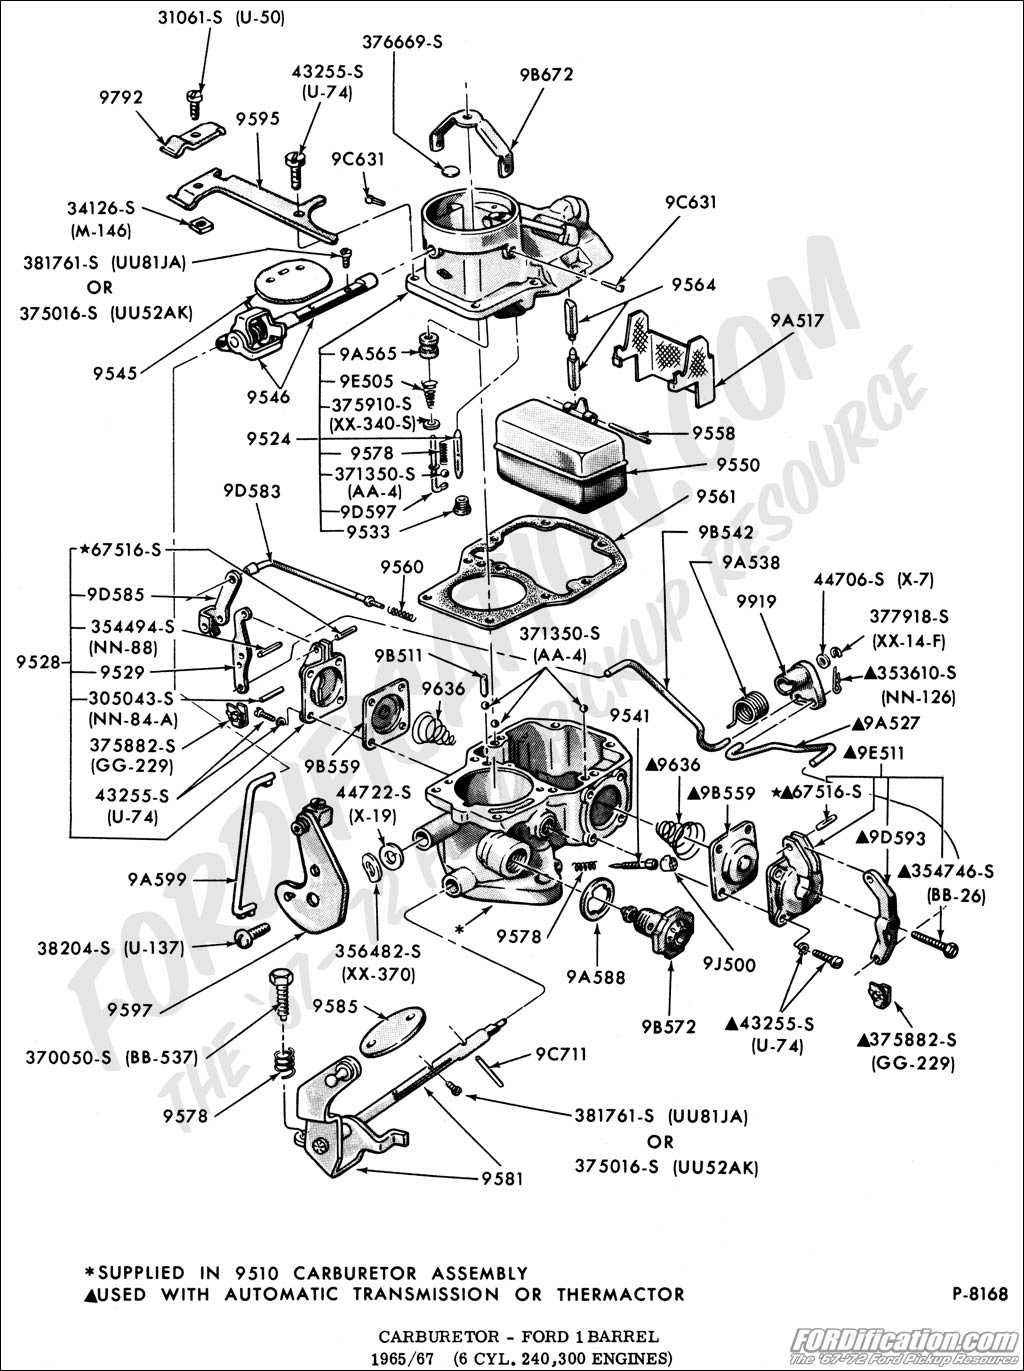 1972 Ford f100 carburetor diagram